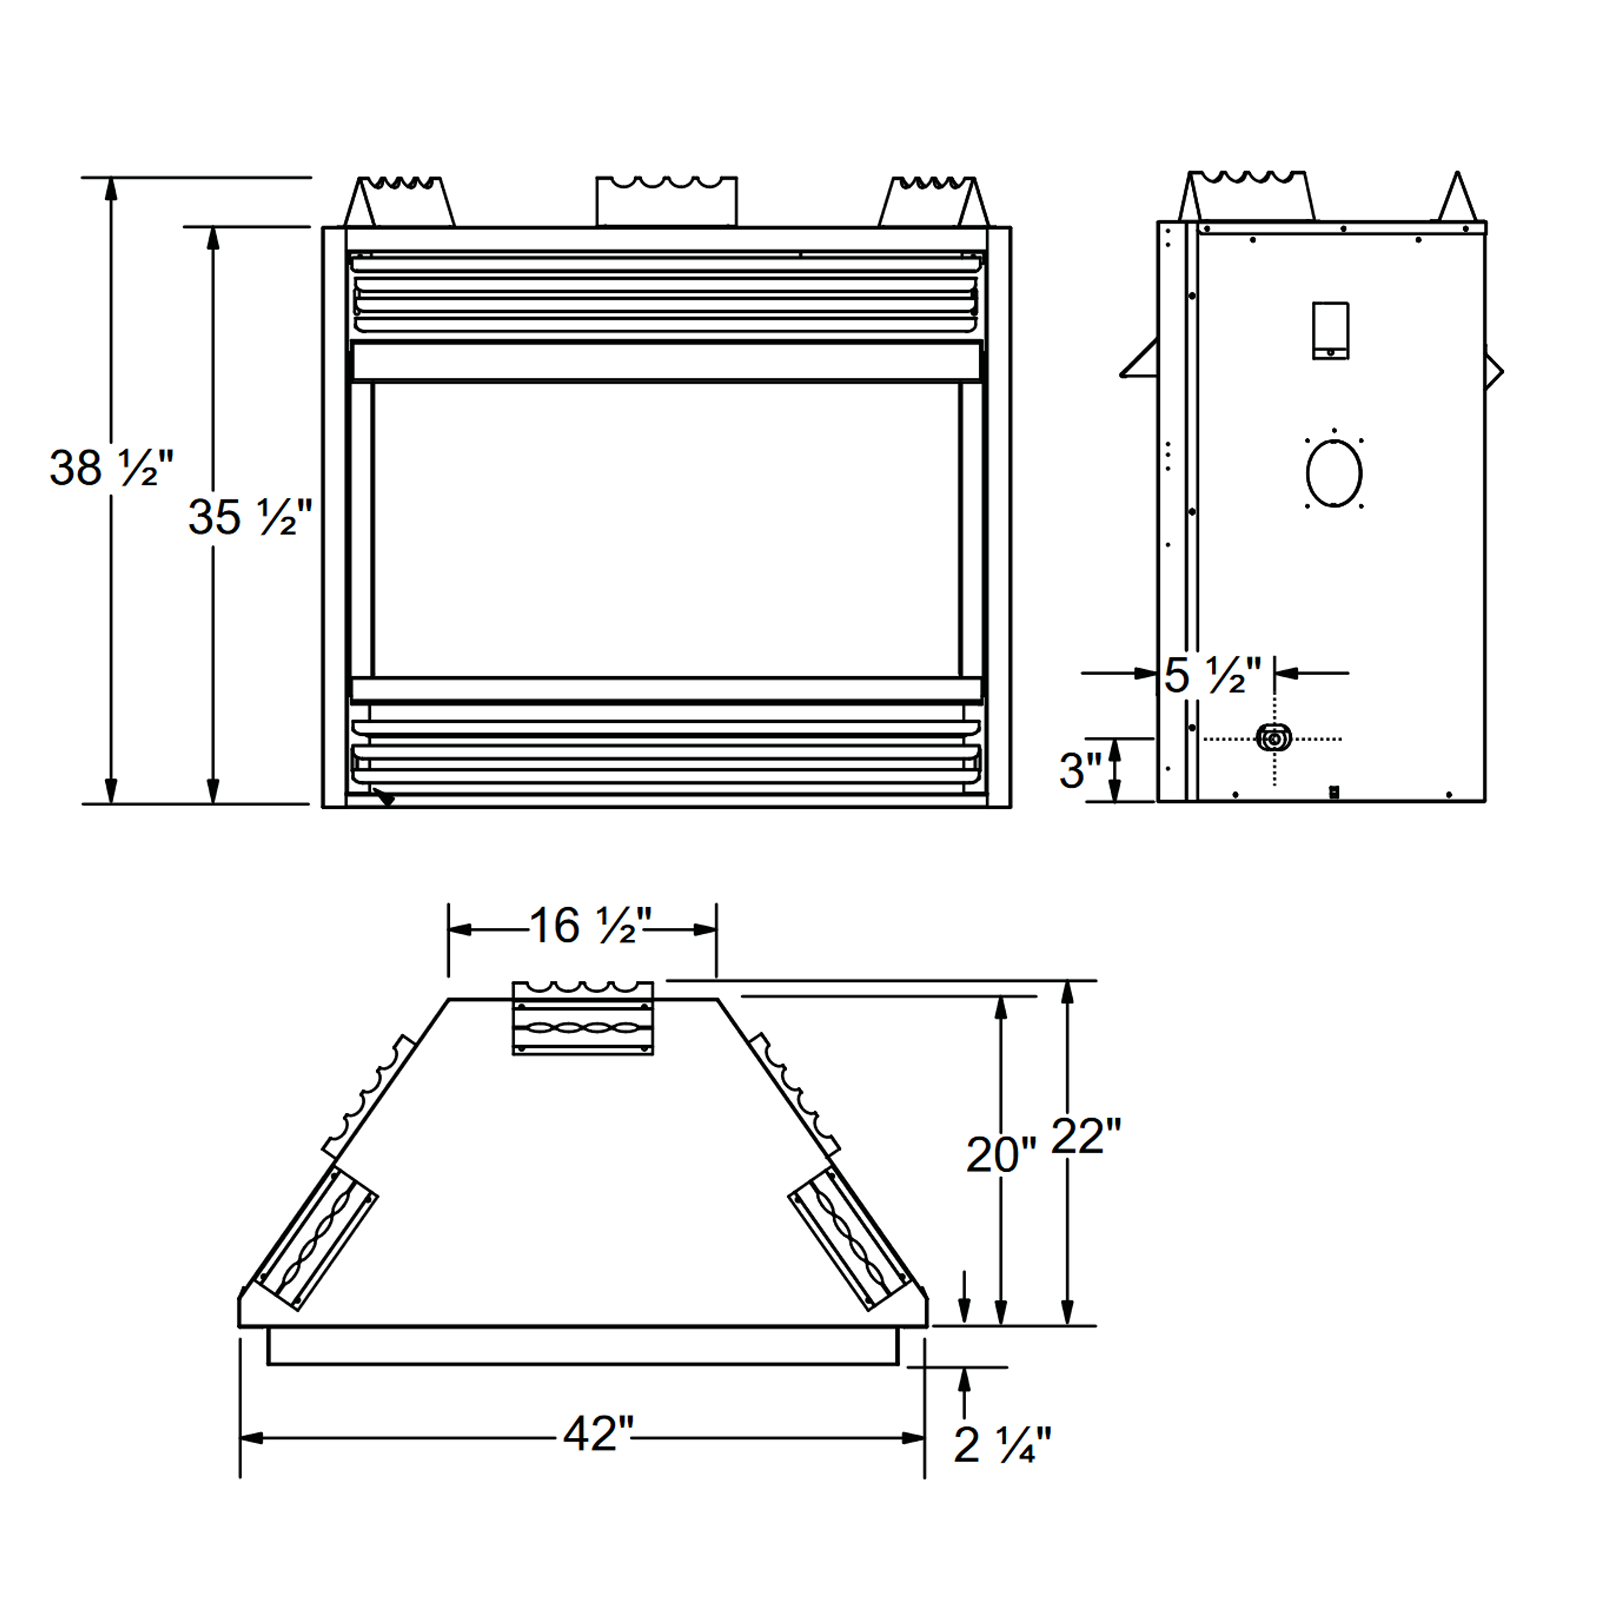 GVF42 Technical Drawing 1